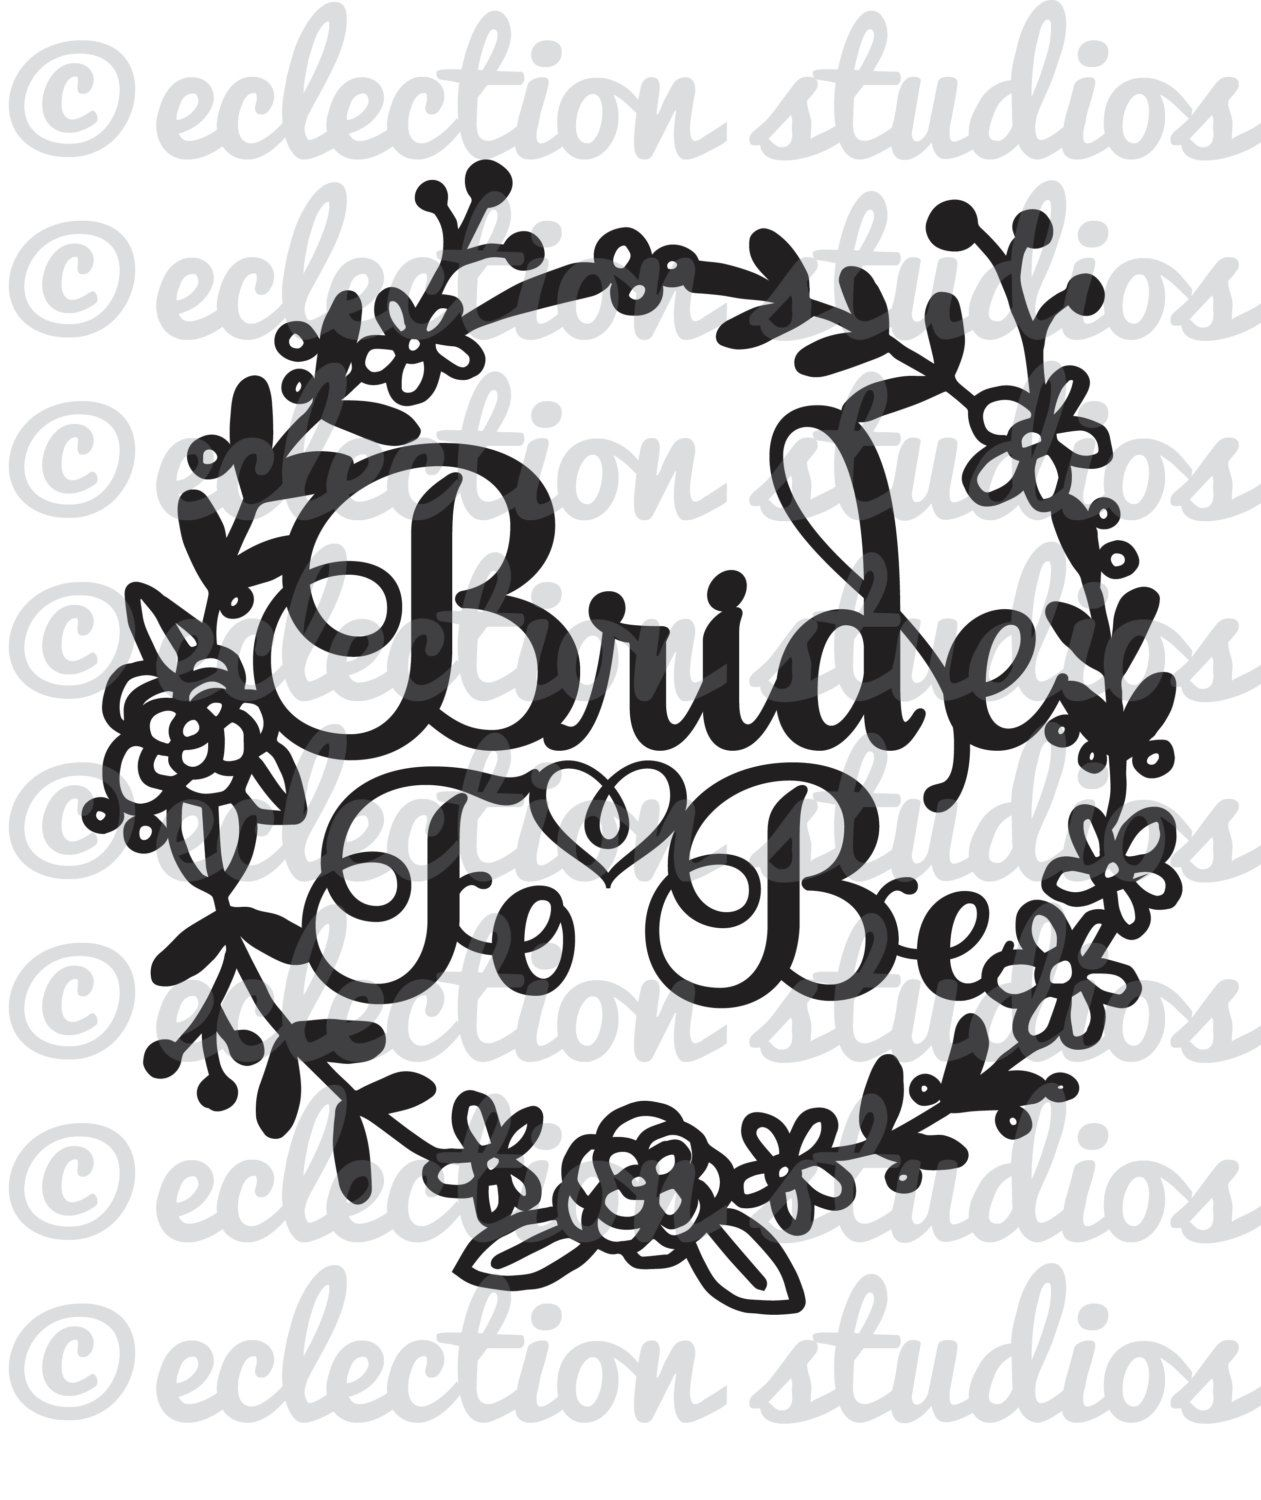 Bride To Be floral wreath wedding engagment by